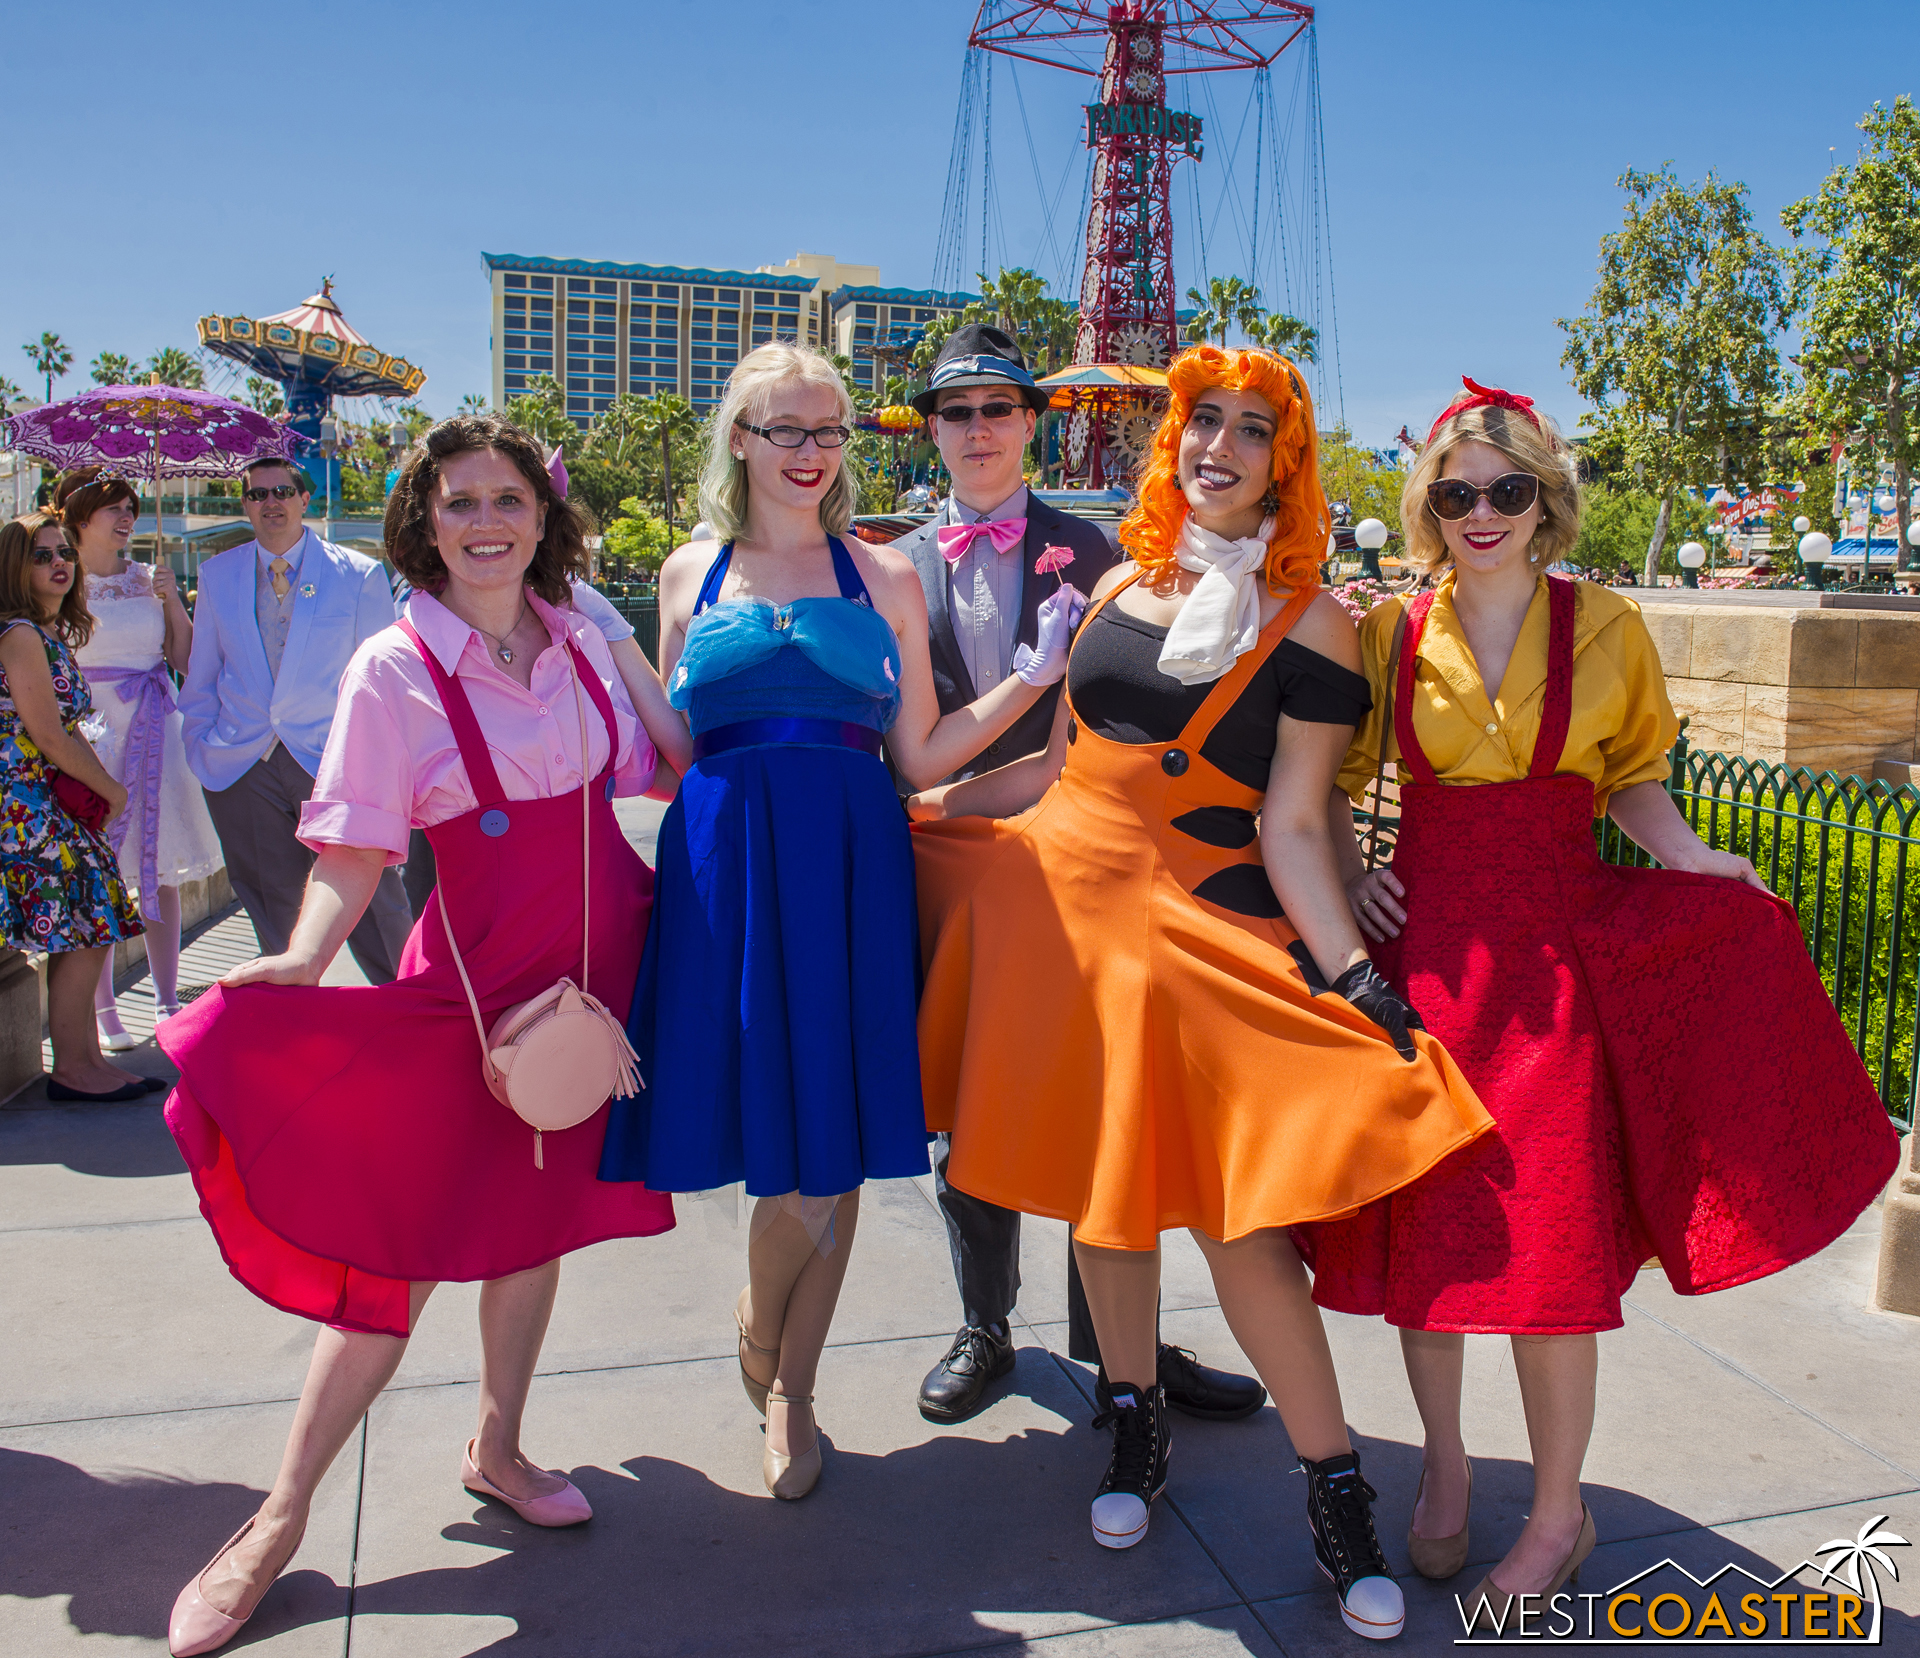 Sometimes, groups get mixed up, like this Winnie the Pooh trio (Piglet on the left, Tigger and Winnie as the two on the right) joined by guests.